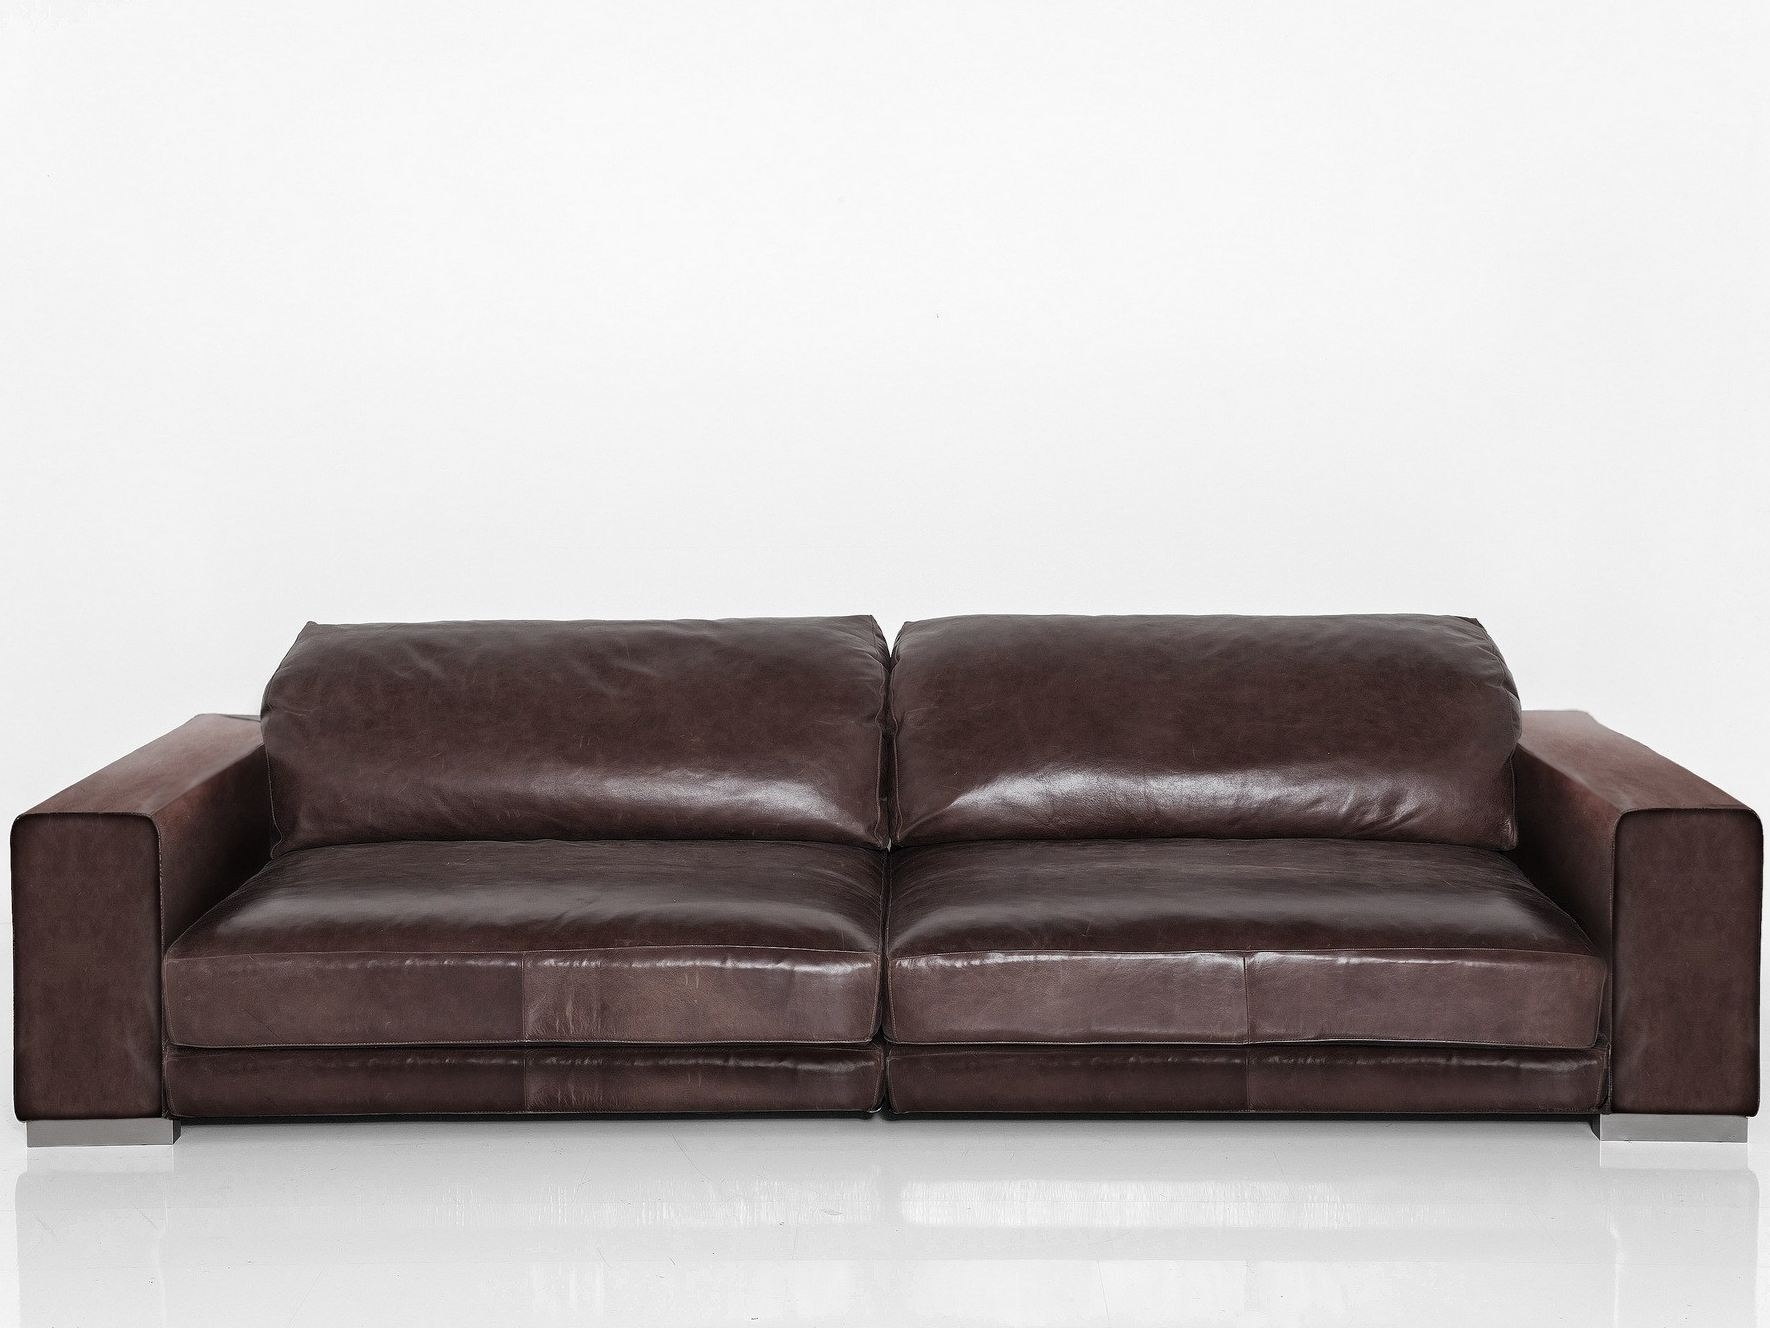 Leather Sofa Seats Designs 15 Collection Of 4 Seat Leather Sofas | Sofa Ideas